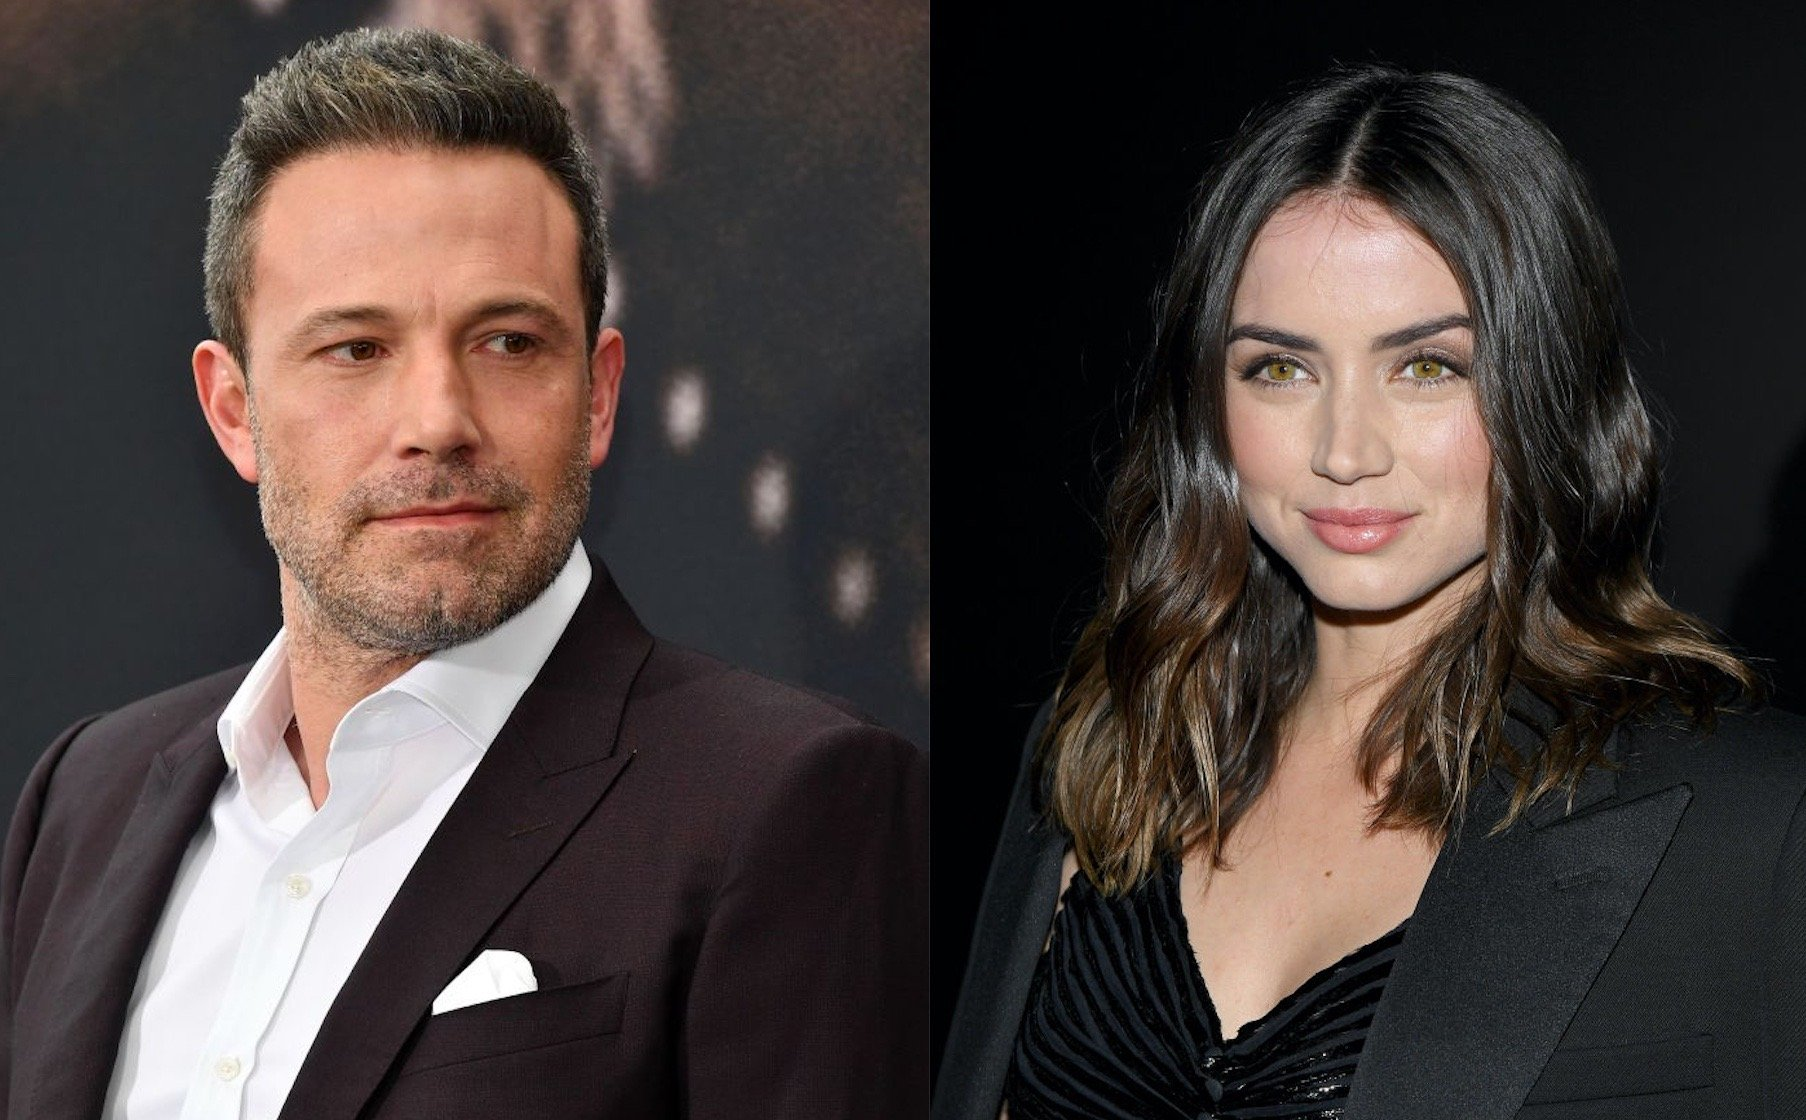 Ben Affleck and Ana de Armas to get Married and have a Baby soon